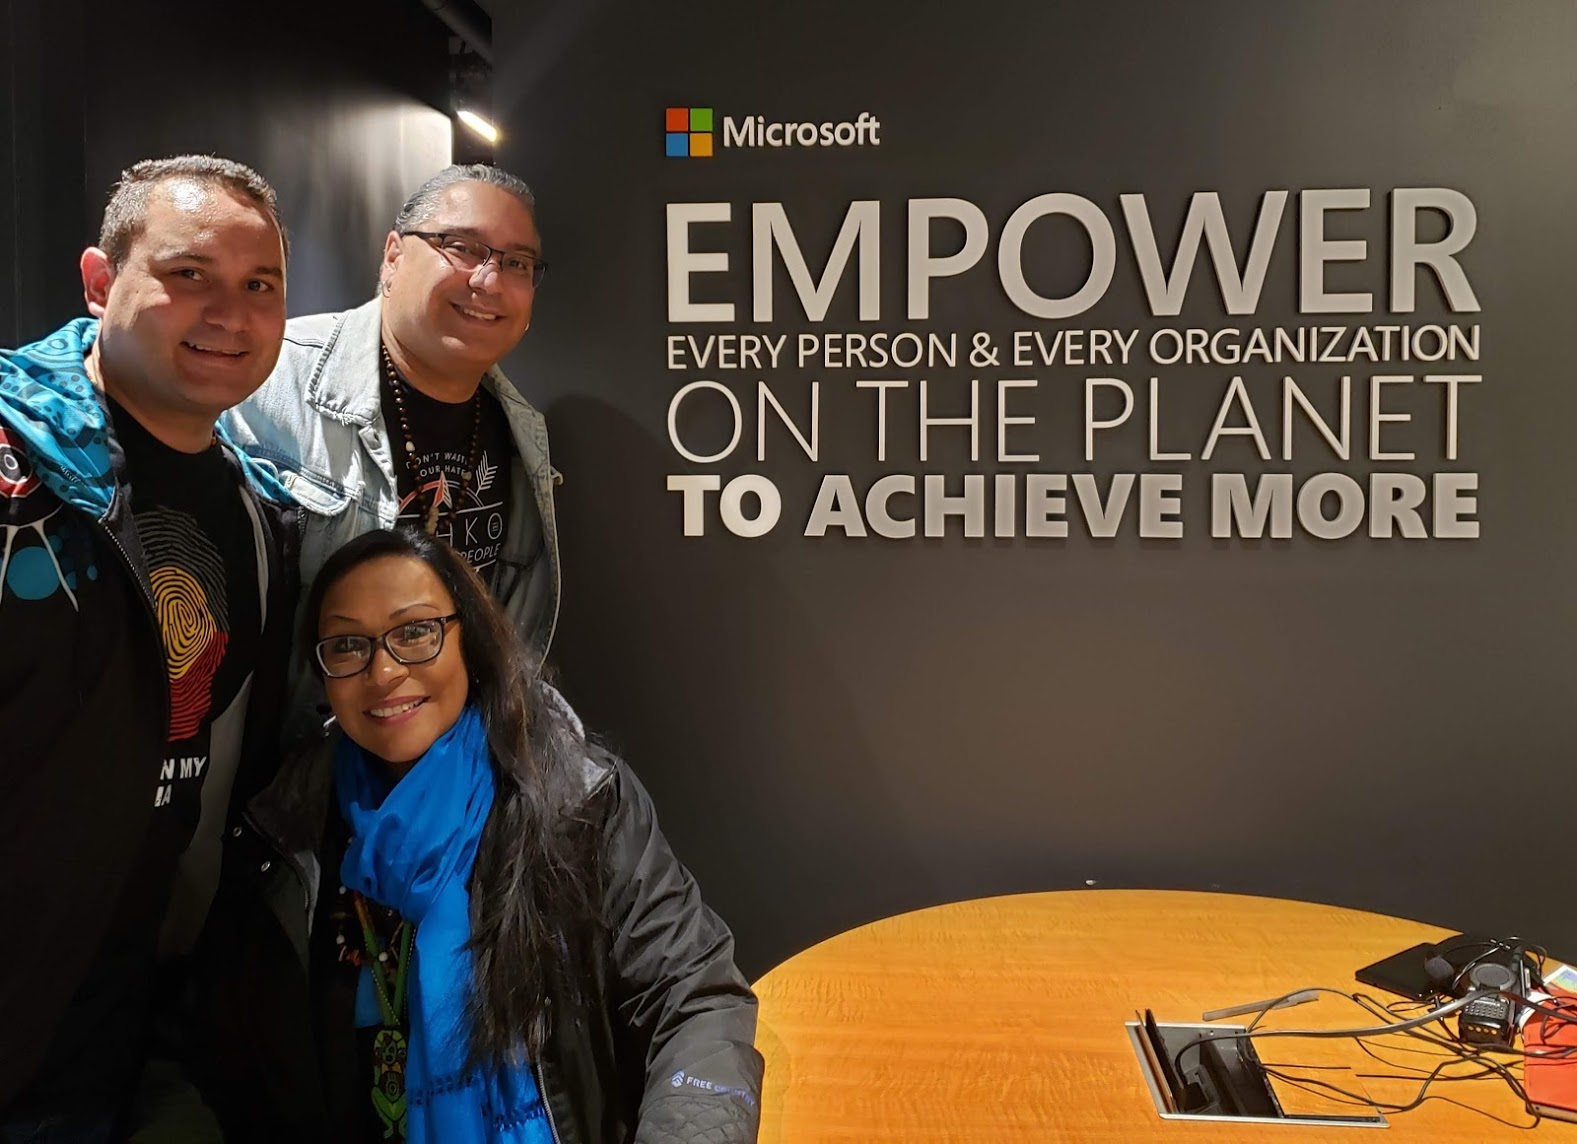 Karl Briscoe of Australia along with Roberto Borrero and Tai Pelli of the United Confederation of Taíno People participate in Digital Custodians IT Workshop held at the Microsoft Store in New York City.